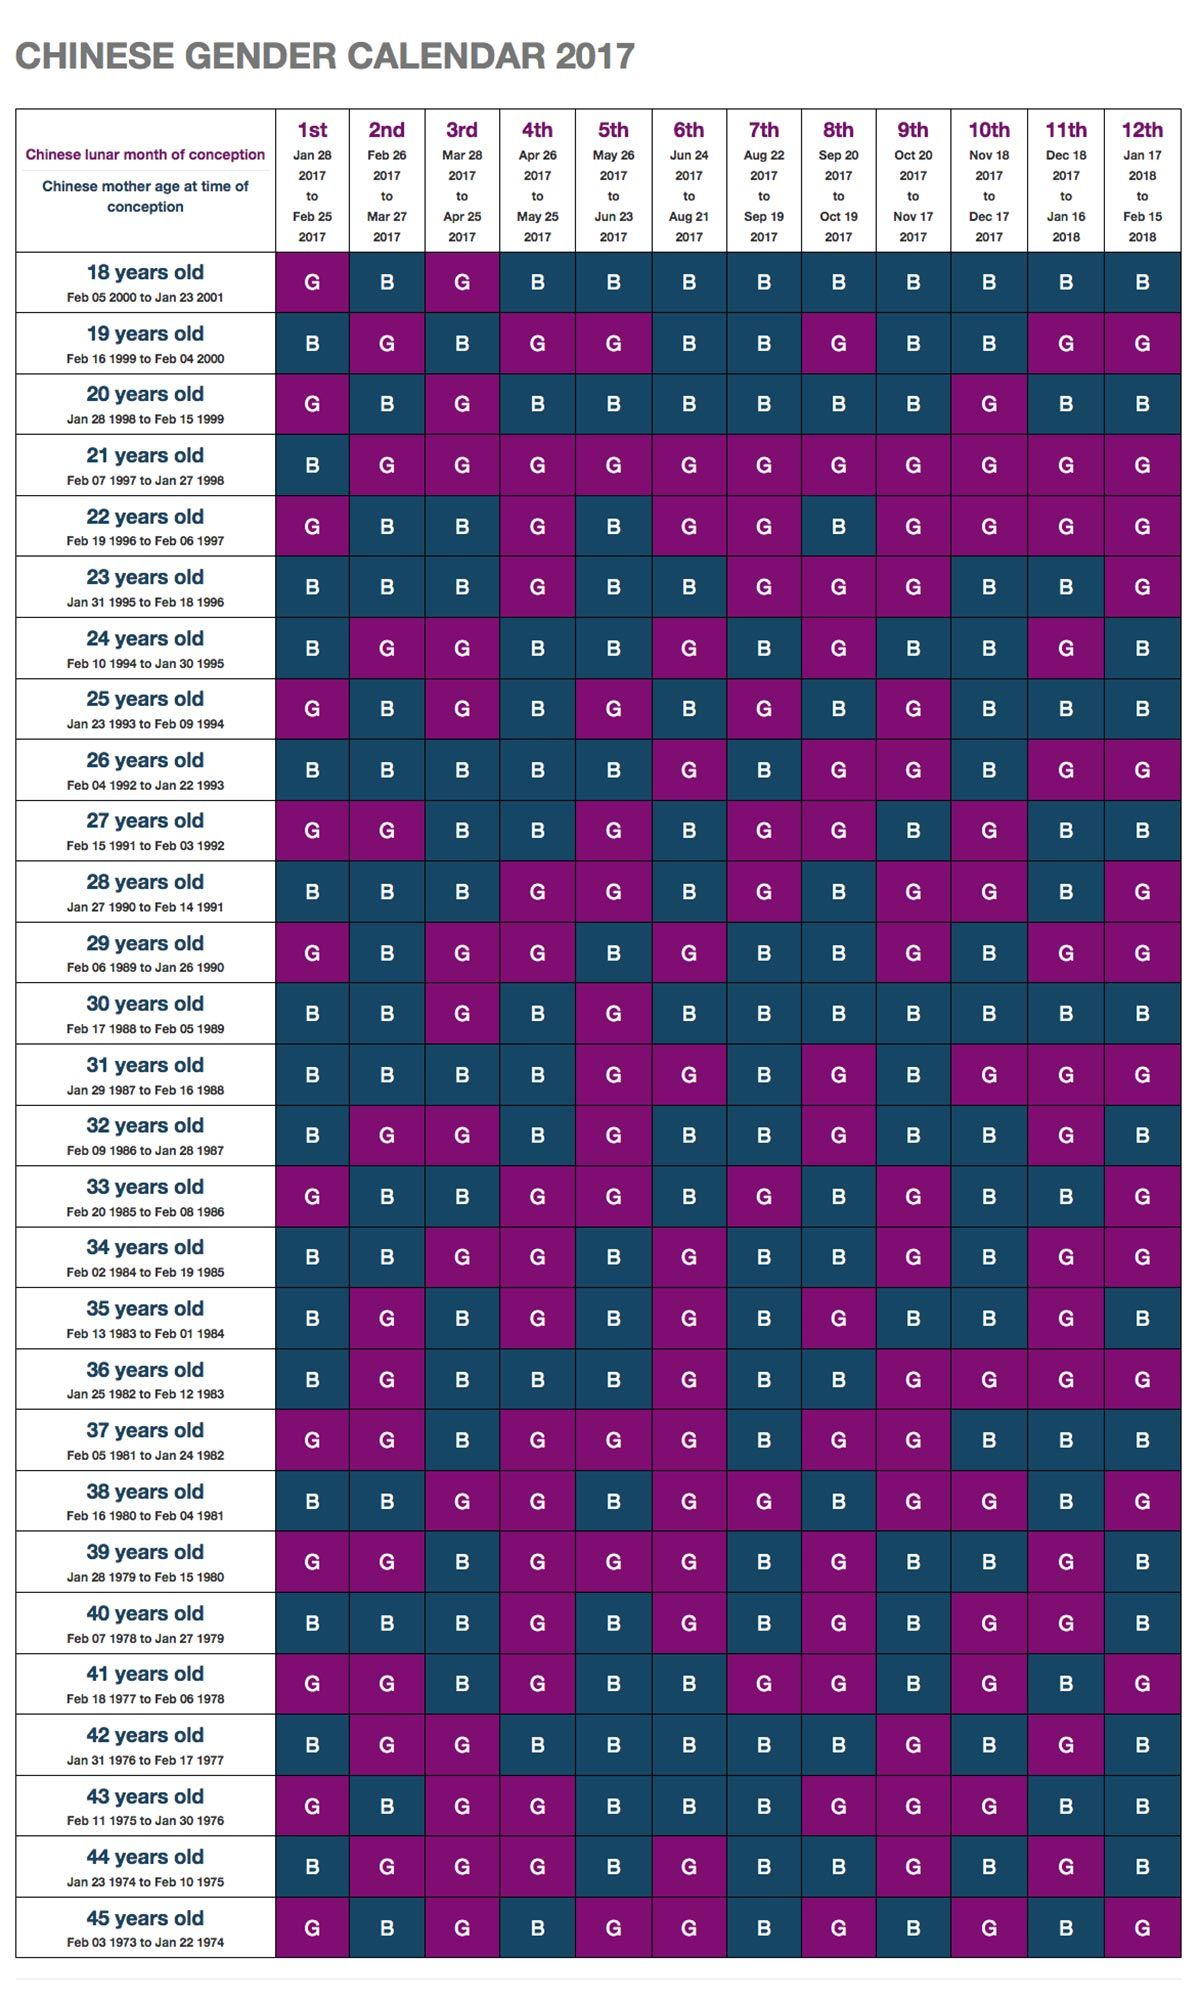 Chinese sex predictor chart 2018